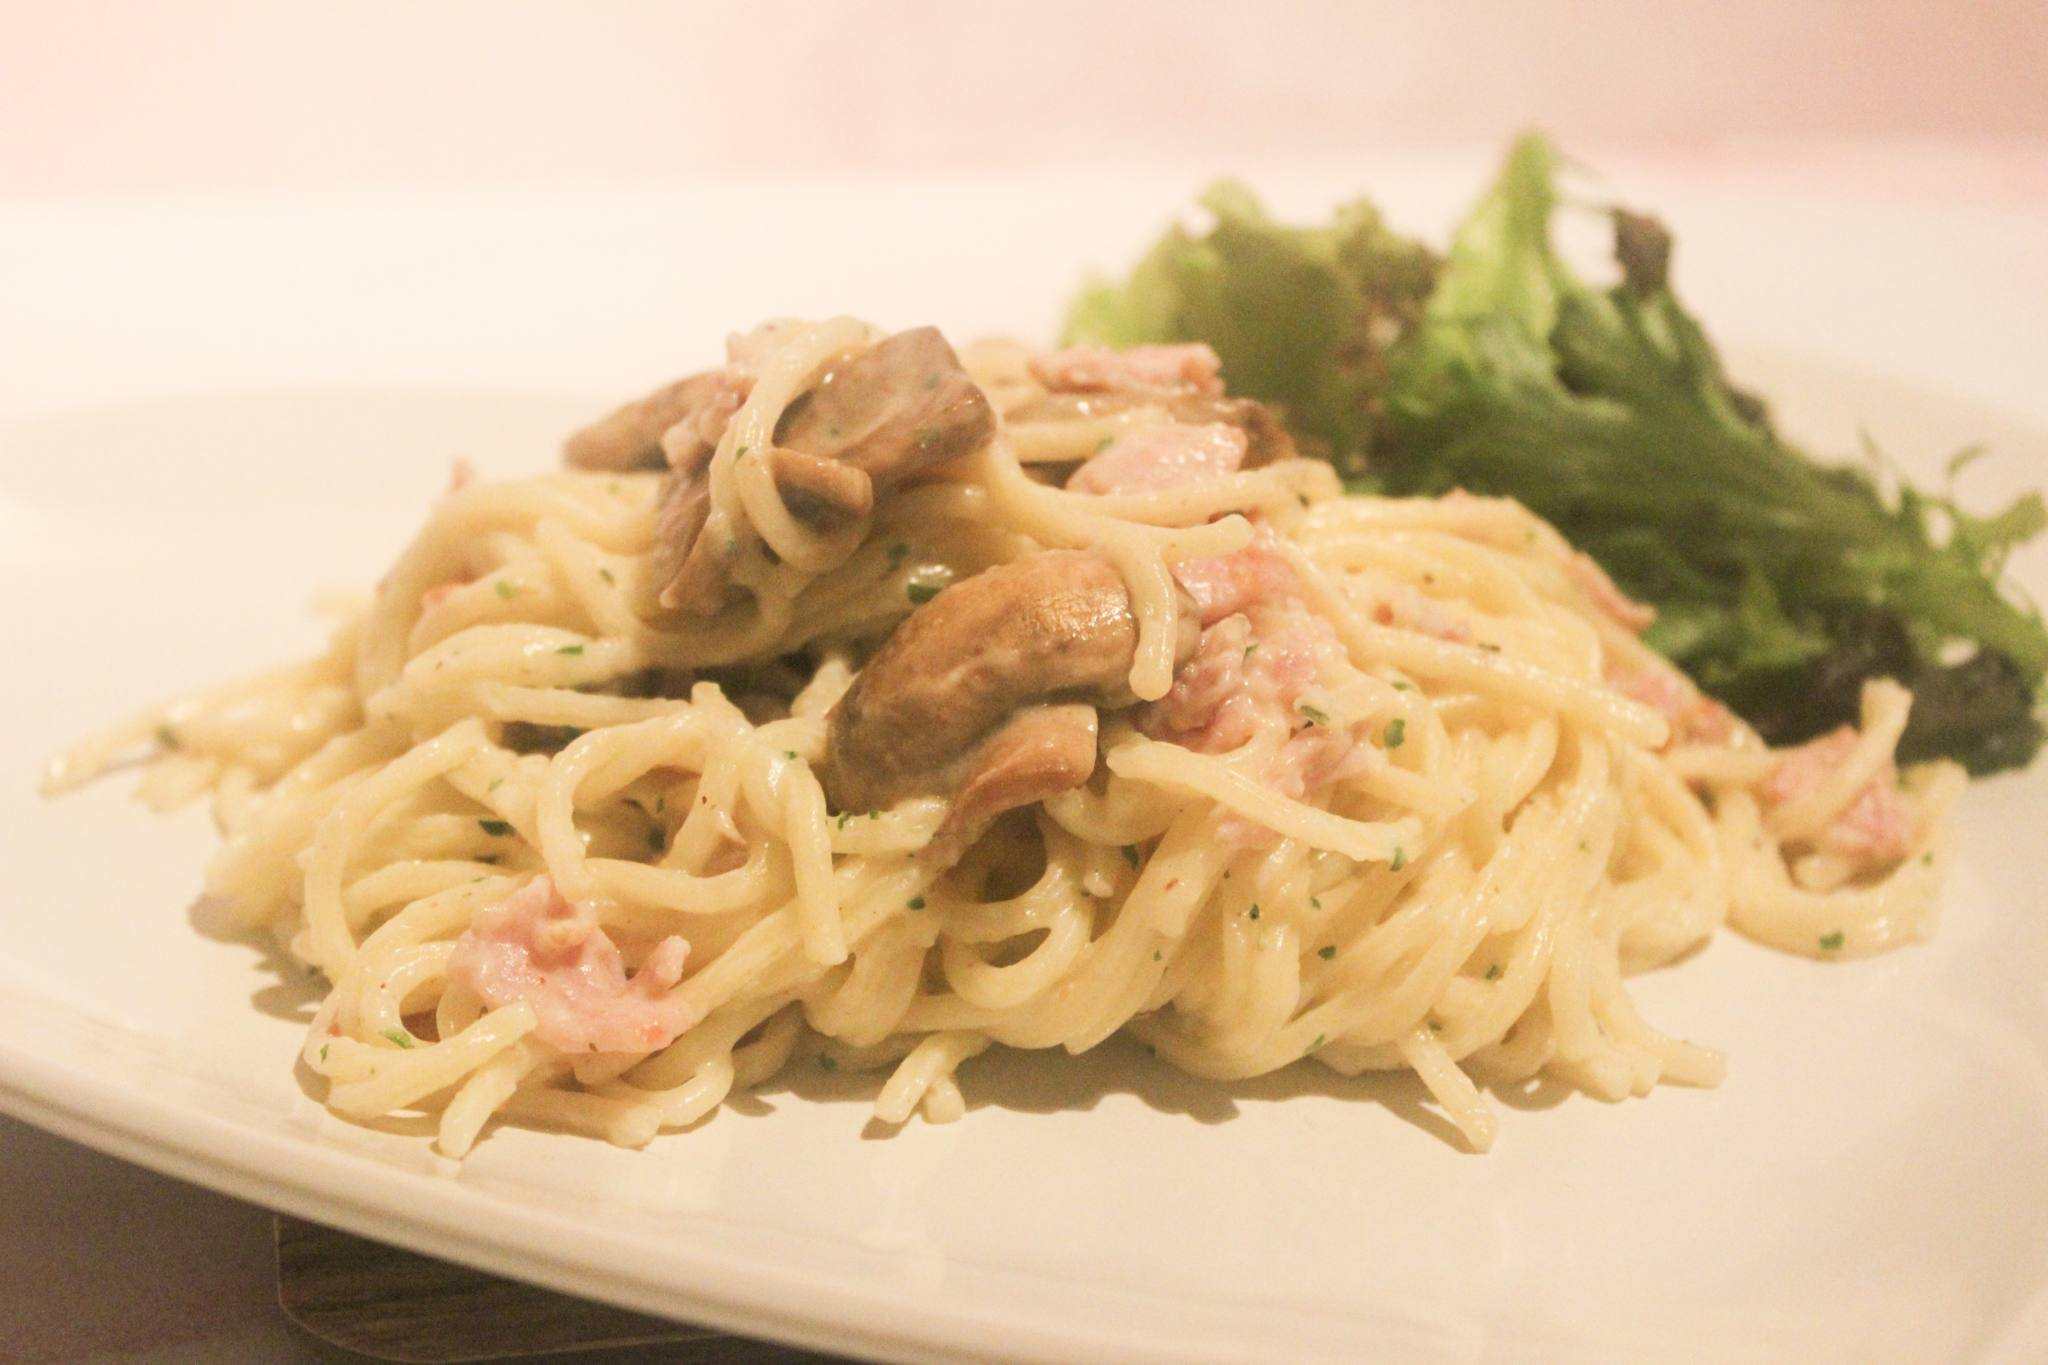 Spaghetti Carbonara prepared on a plate with a mixed leaf garnish